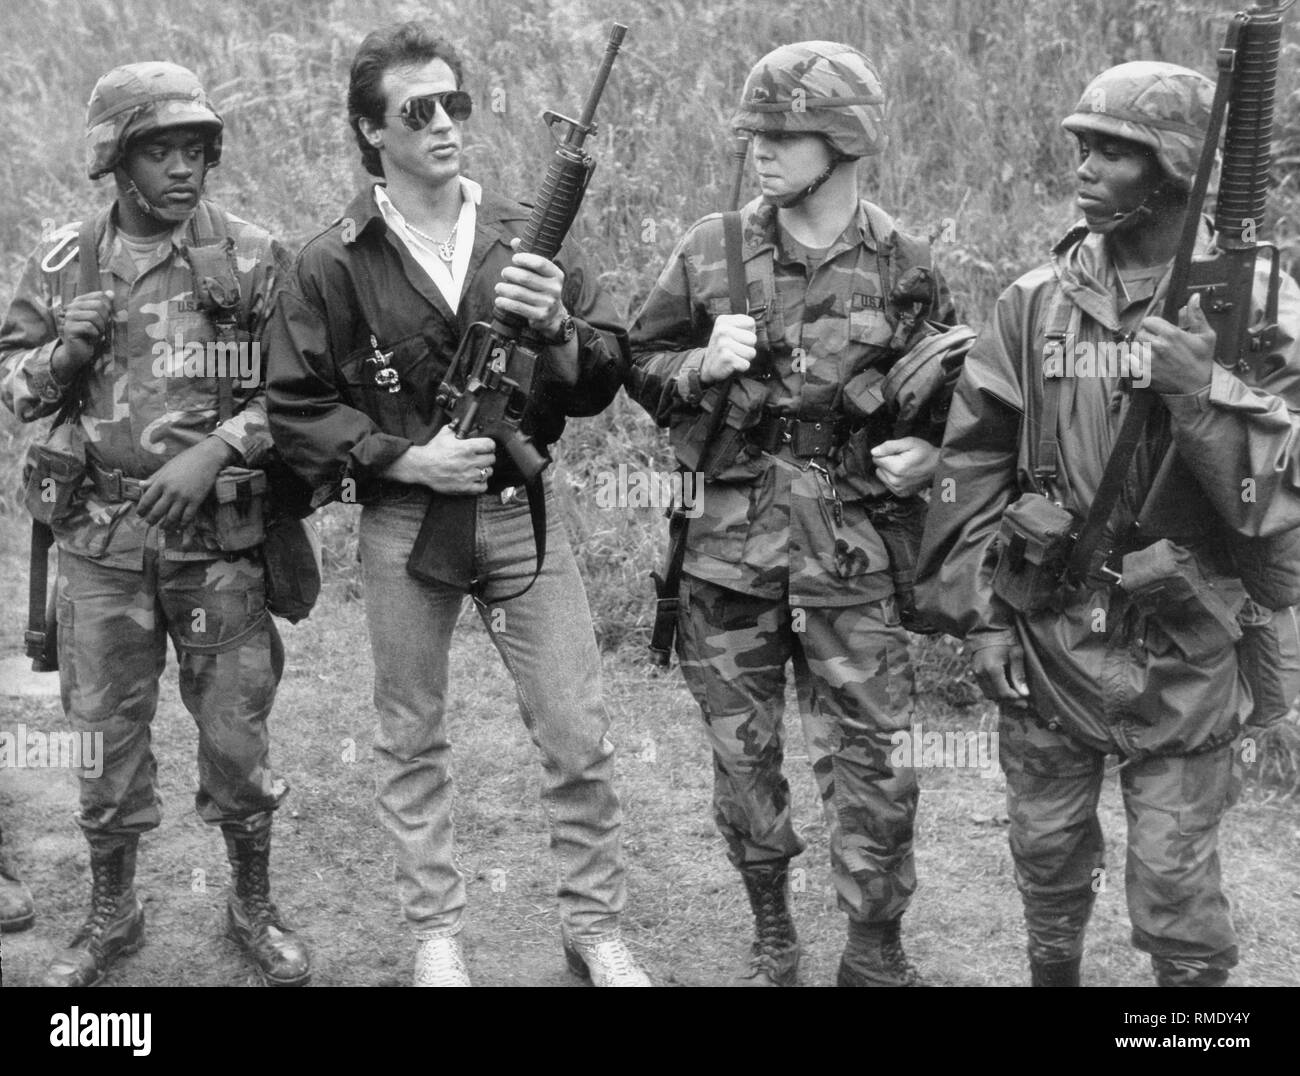 The actor Sylvester Stallone visits American troops in Berlin and appears, among others, with an M-16 assault rifle. - Stock Image